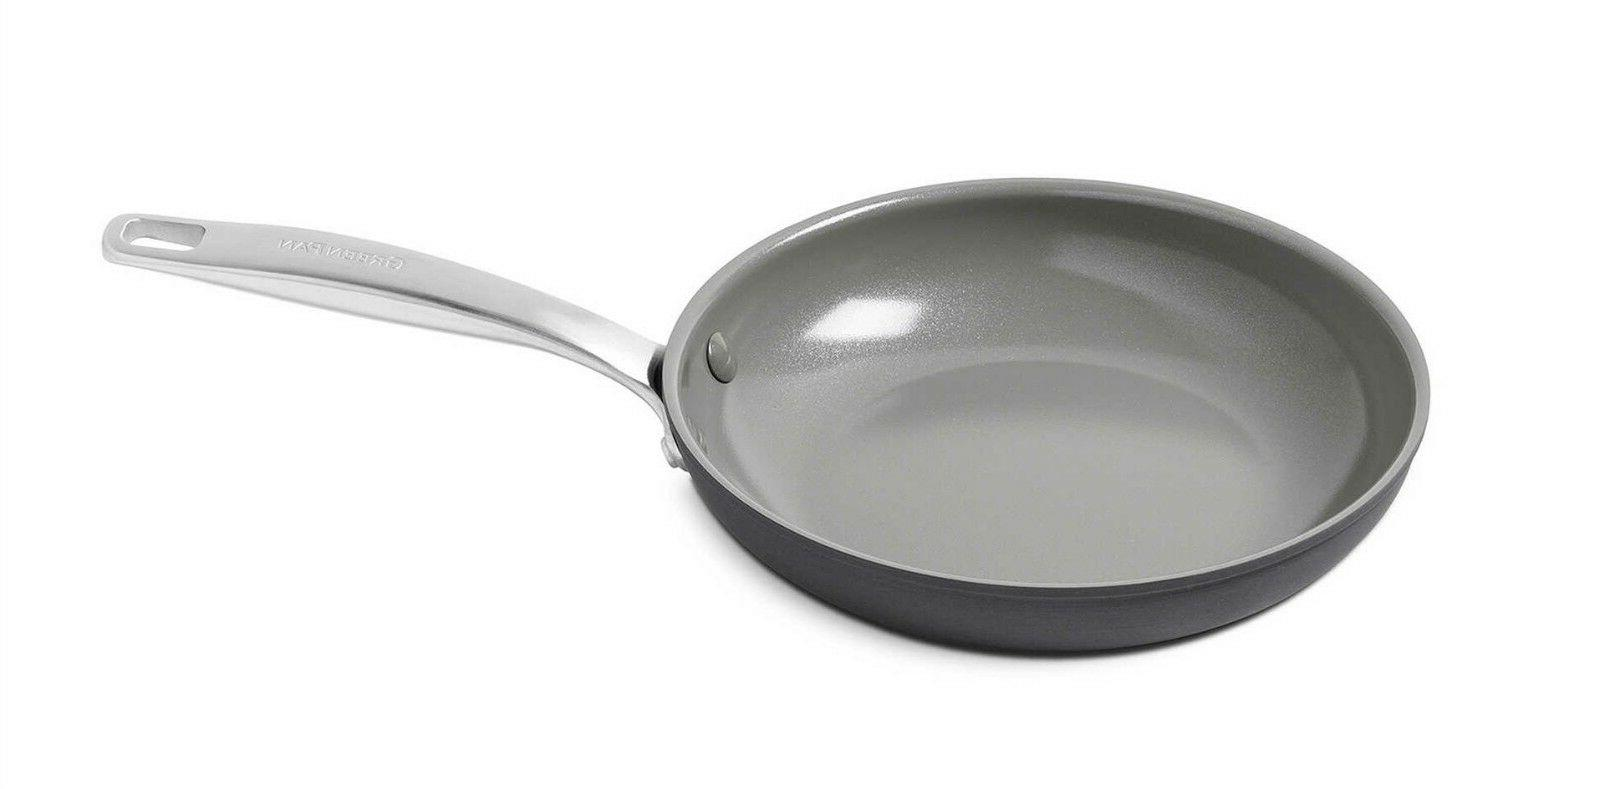 GreenPan Frying Pan Ceramic Nonstick Anodized Cookware Sizes